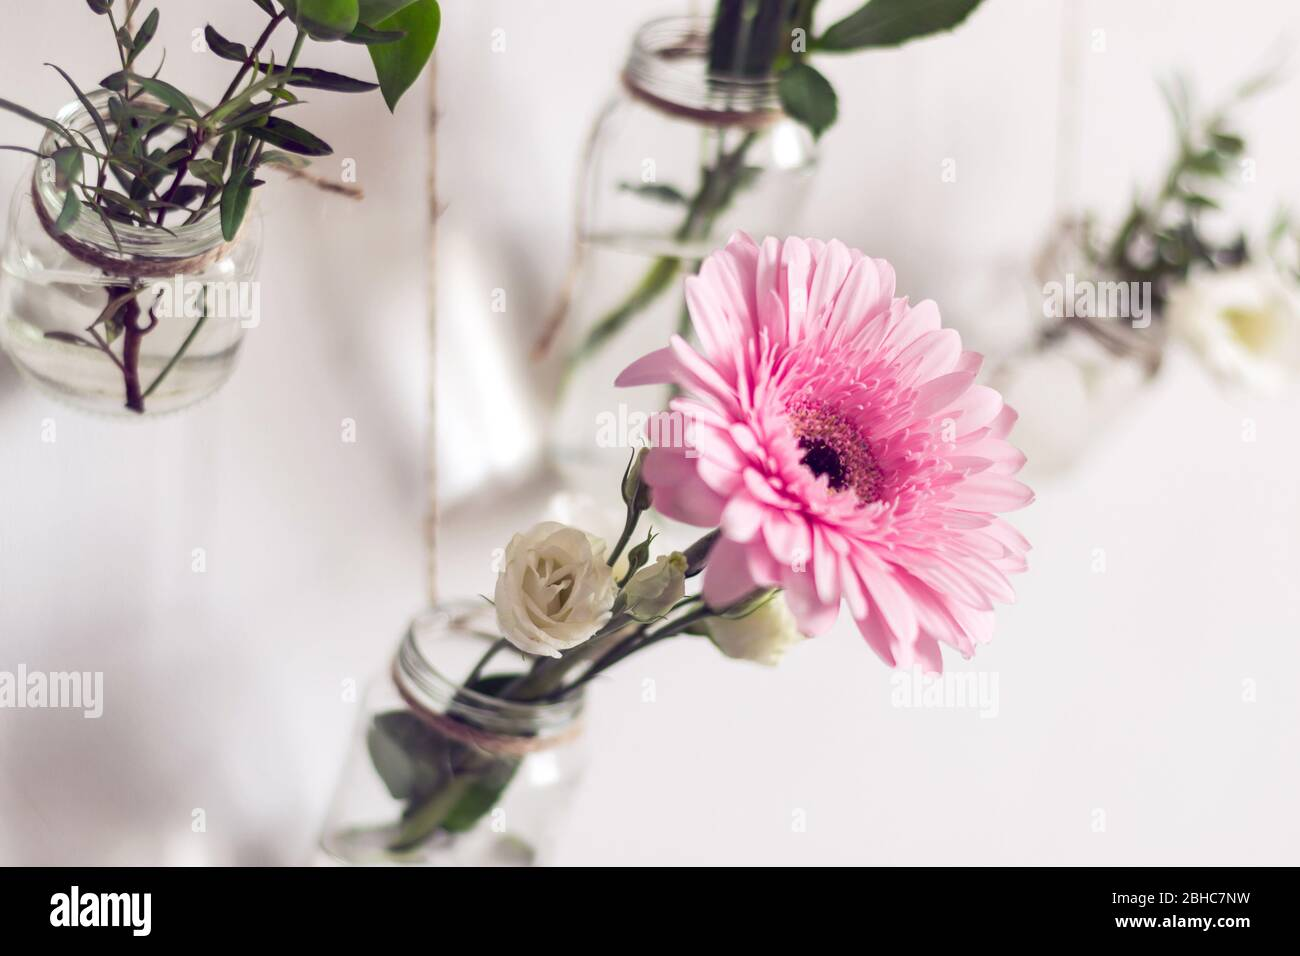 Beautiful Flowers Hang On White Wall Diy Home Natural Decor Old Glass Jars Are Reused As Flower Vases Stock Photo Alamy